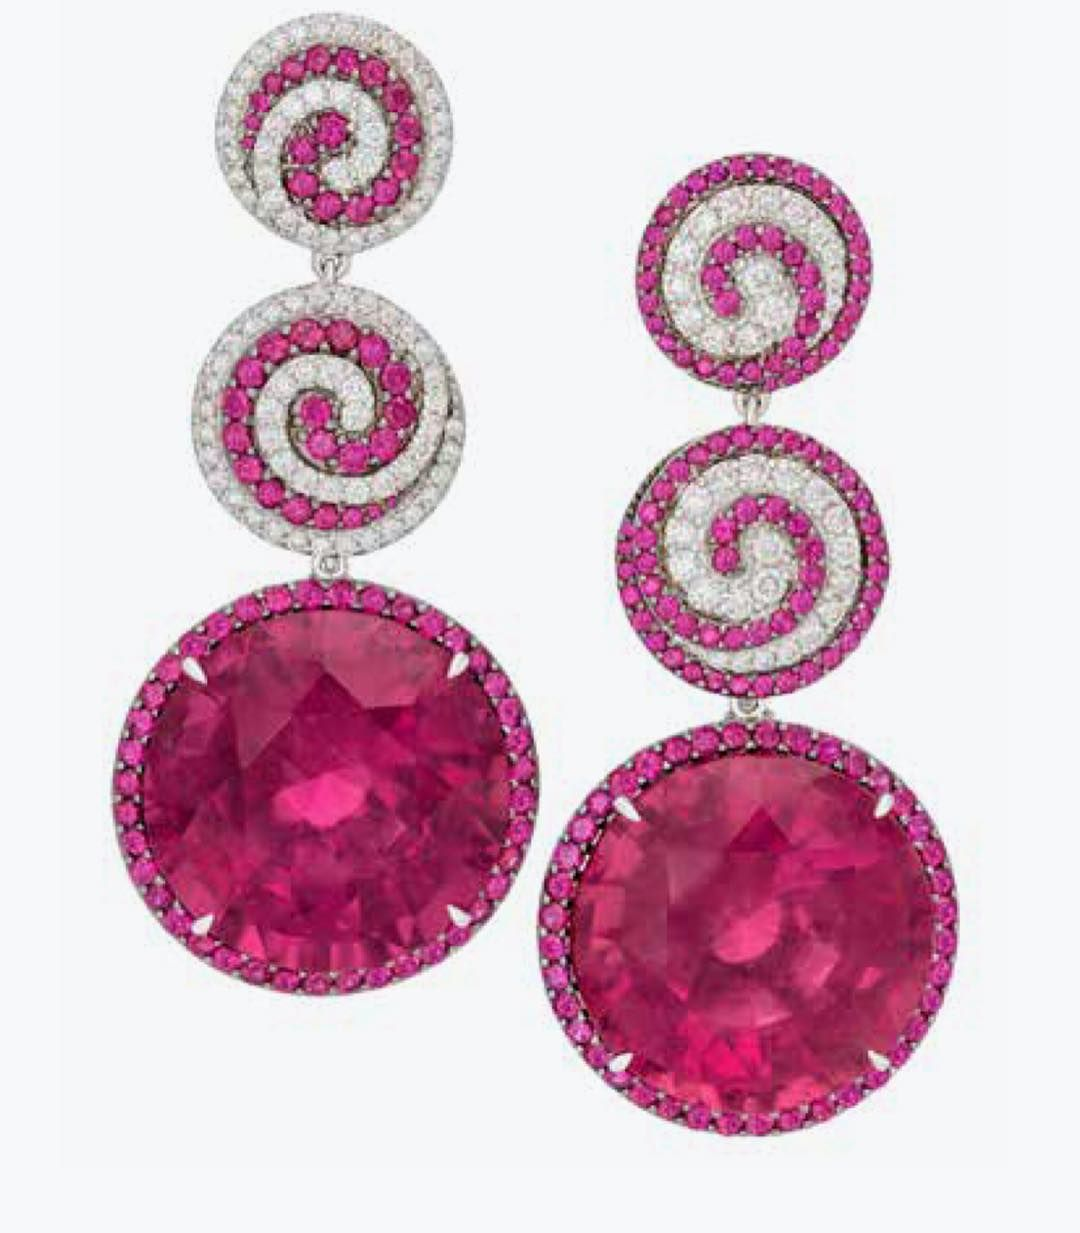 """Become """"Mesmerised"""" by 74.77cts of precious Rubellite Tourmaline with mesmerising swirls of Rubies and Diamonds.  These gems are one of a kind - rare enough to find one gem like this but a pair is truly special.  Margot McKinney jewellery  #oscars2016"""